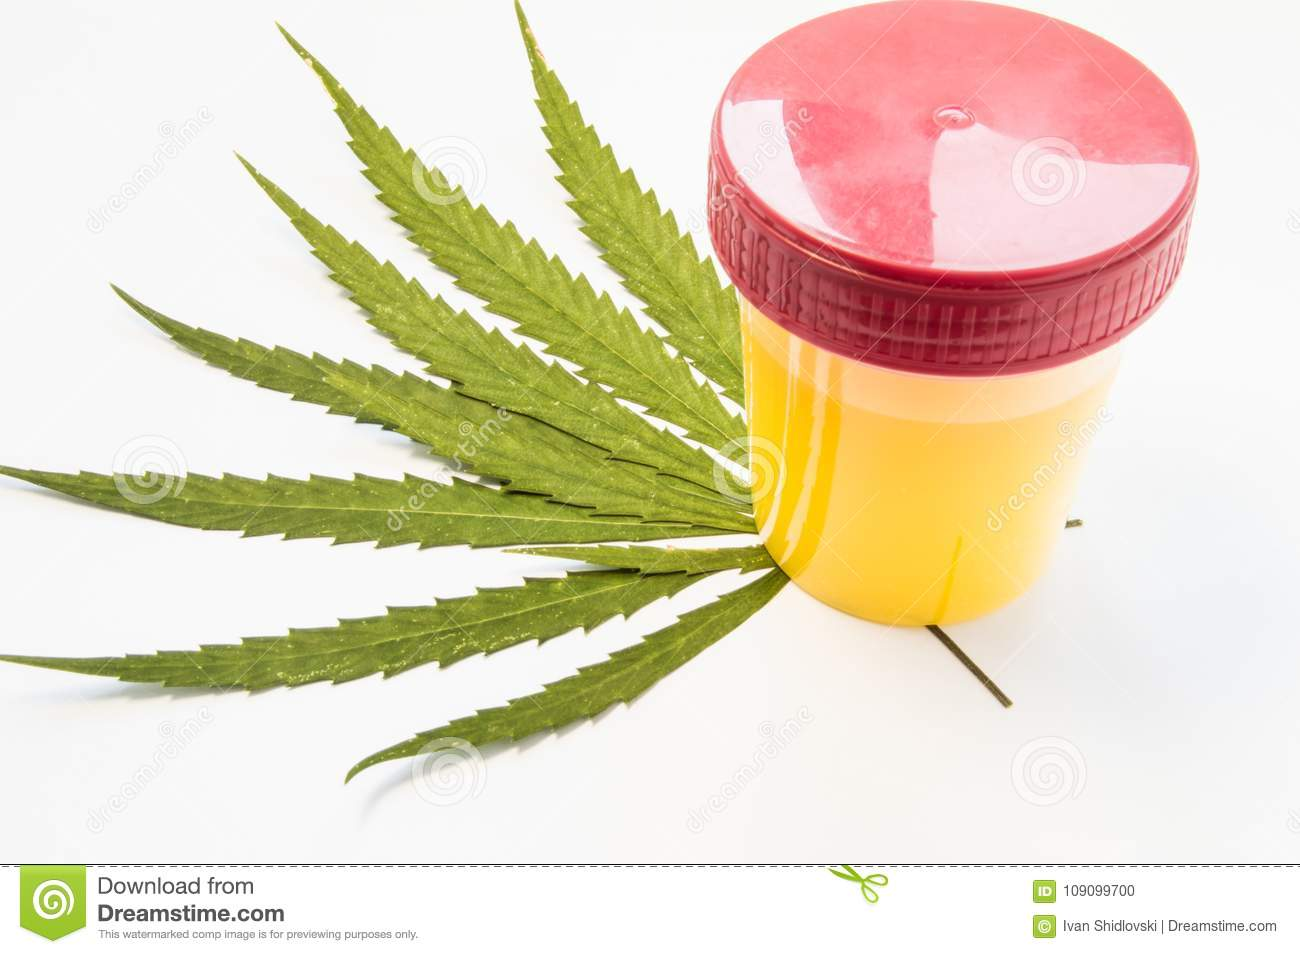 Medical Laboratory Container With Urine Sample Rests On Green Leaves